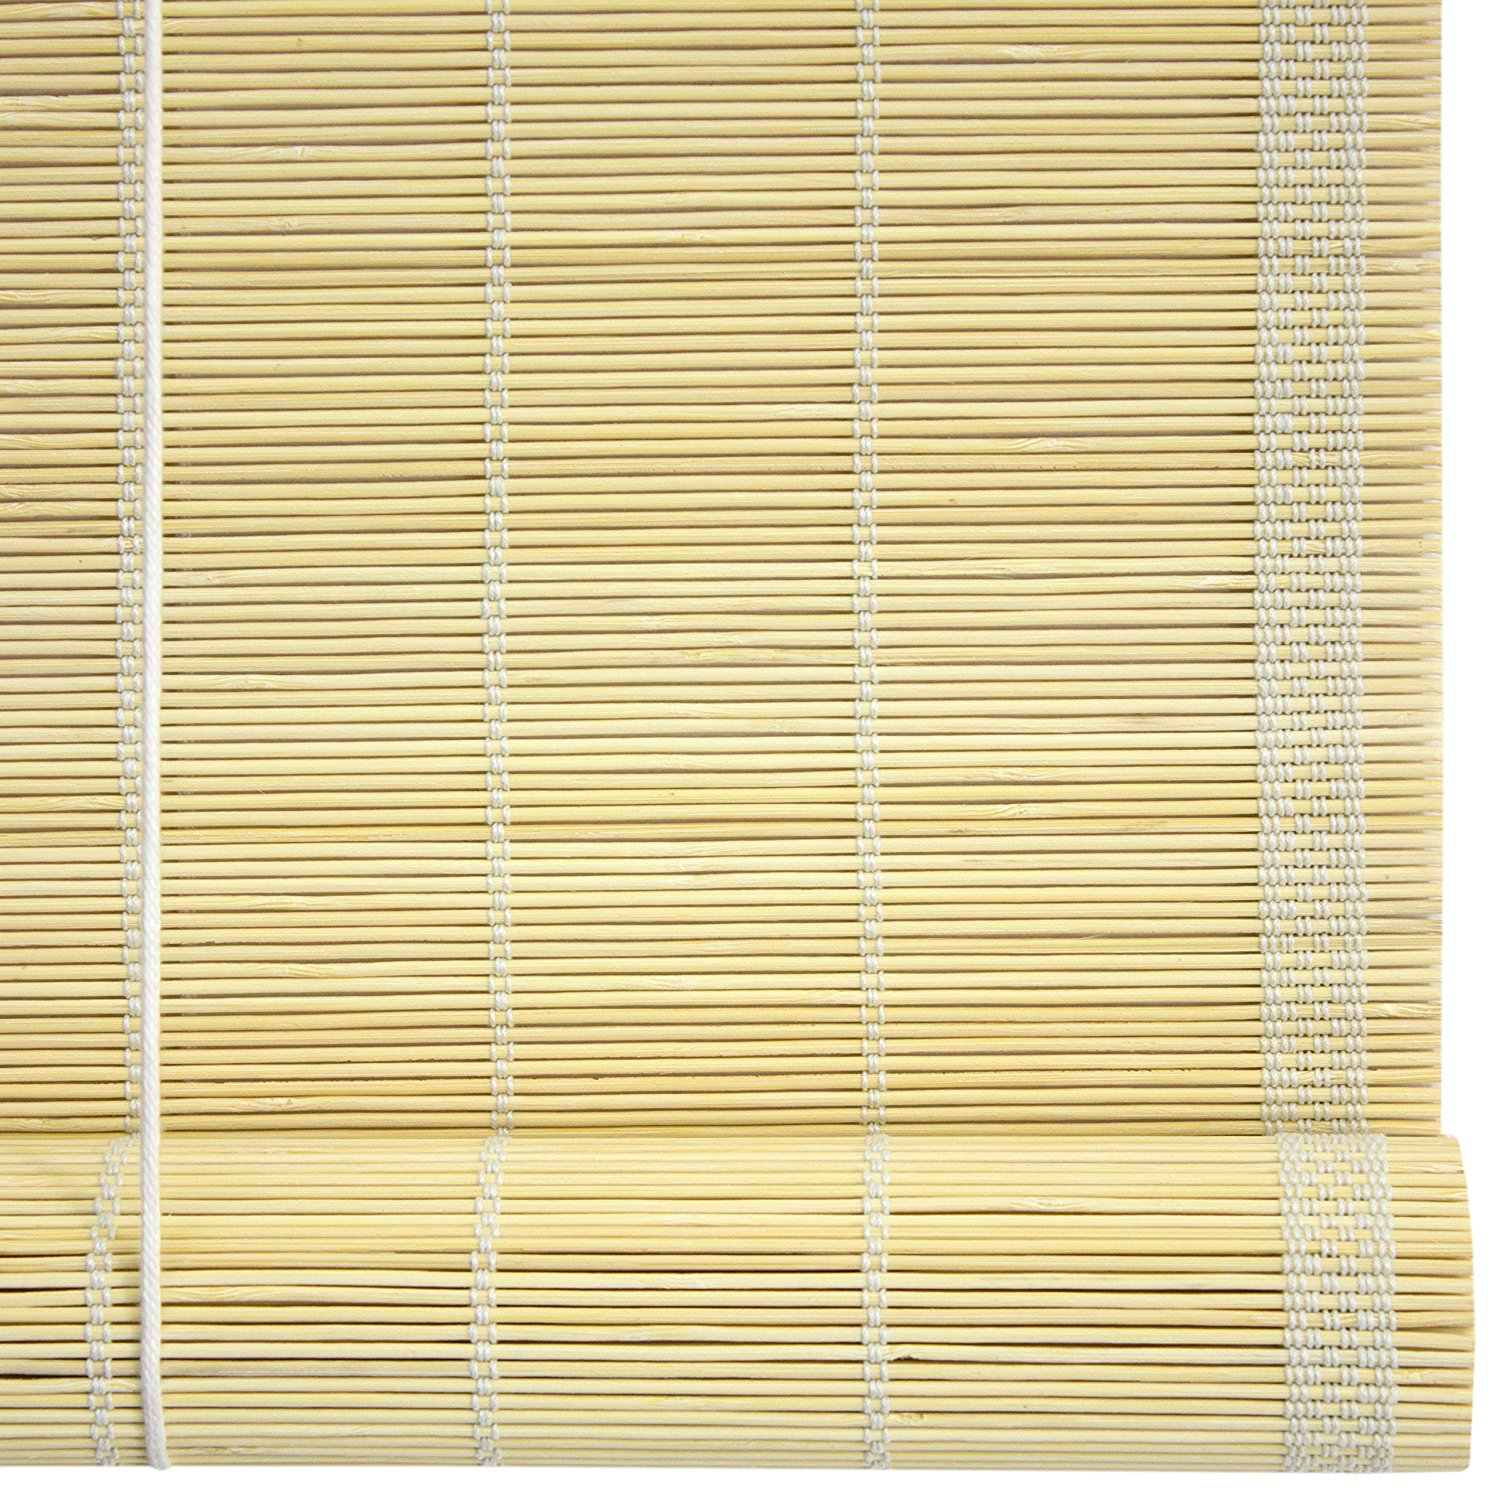 Ikea Velvet Curtains | Matchstick Blinds Ikea | 34 Inch Blinds